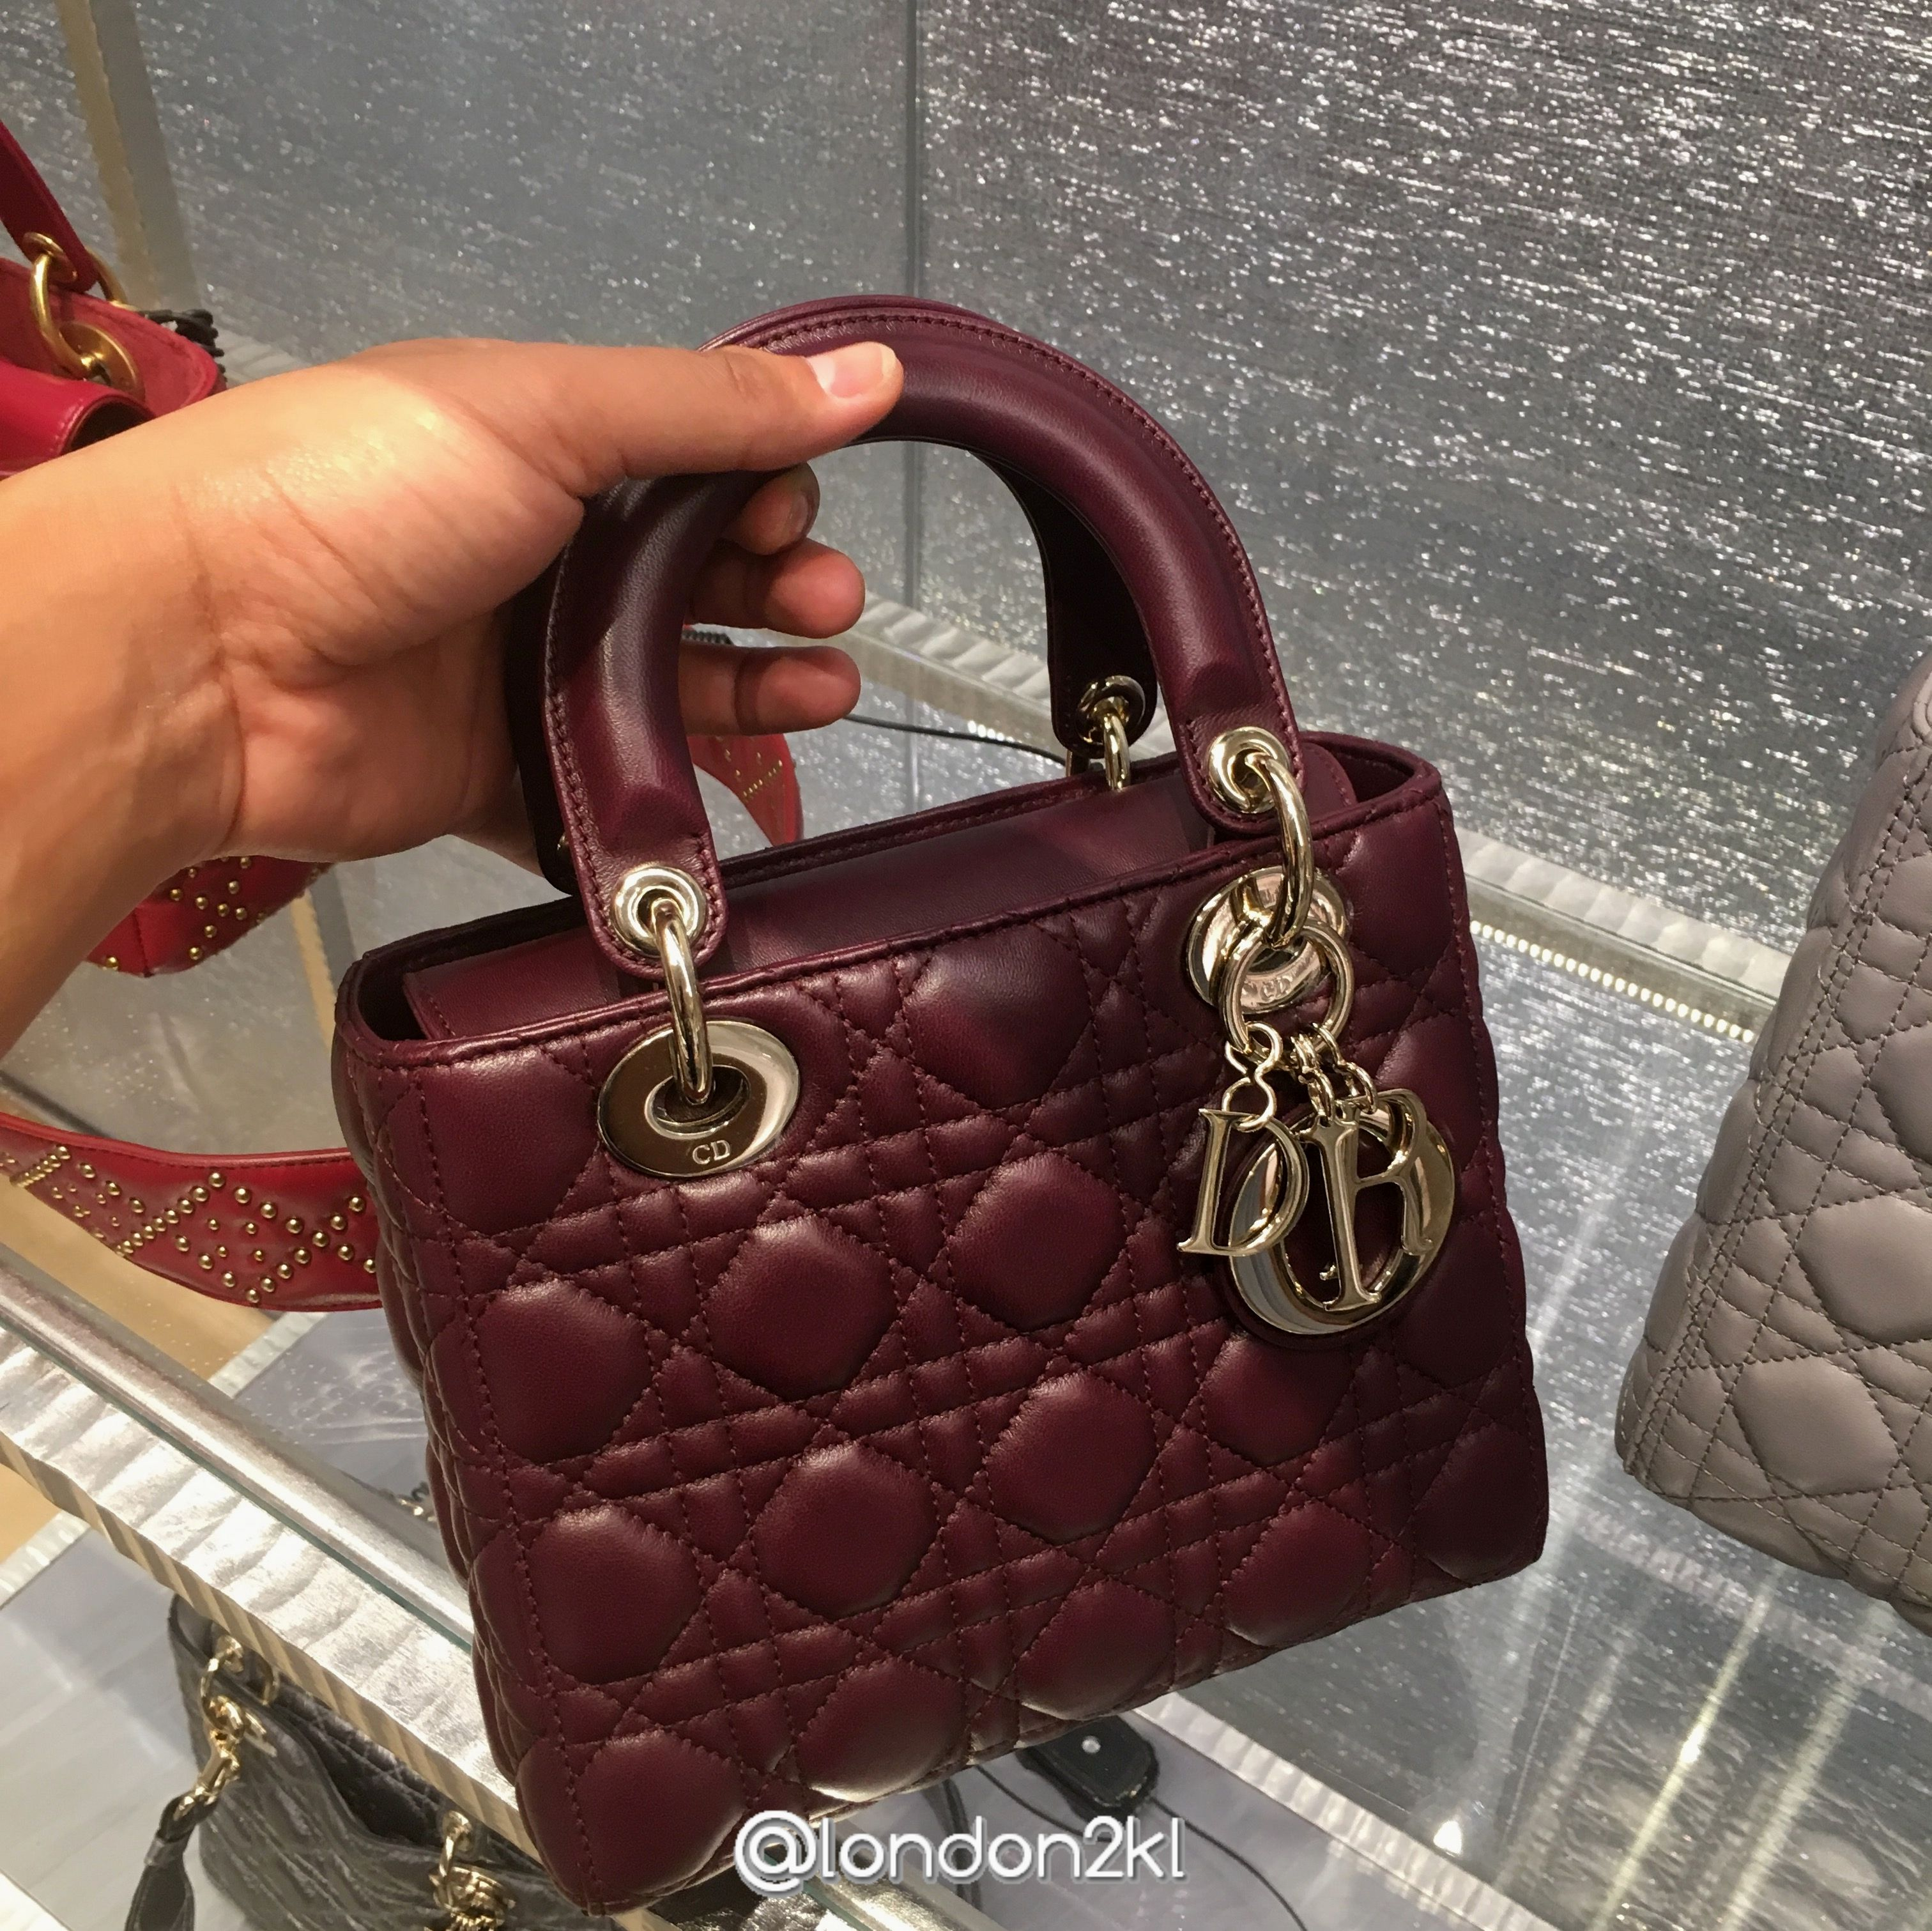 9d0370a25af3 My Lady Dior Bag in Burgundy RM13,750   Christian Dior in 2019 ...